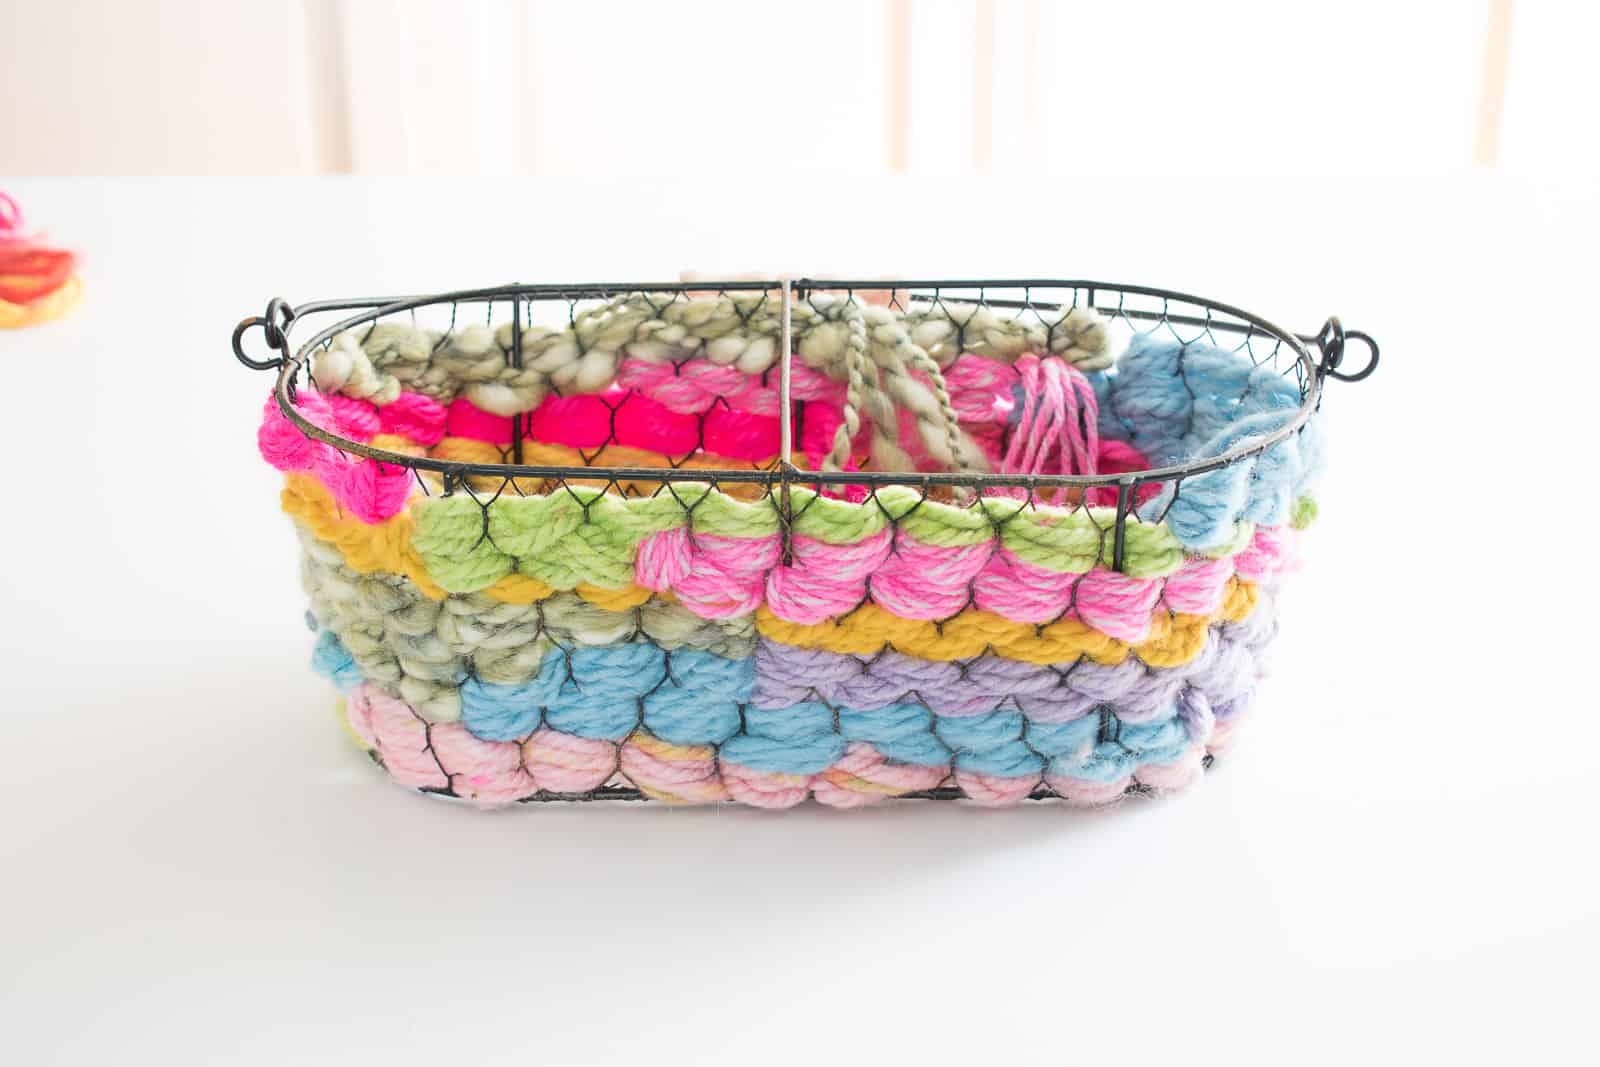 continue weaving the yarn around the basket